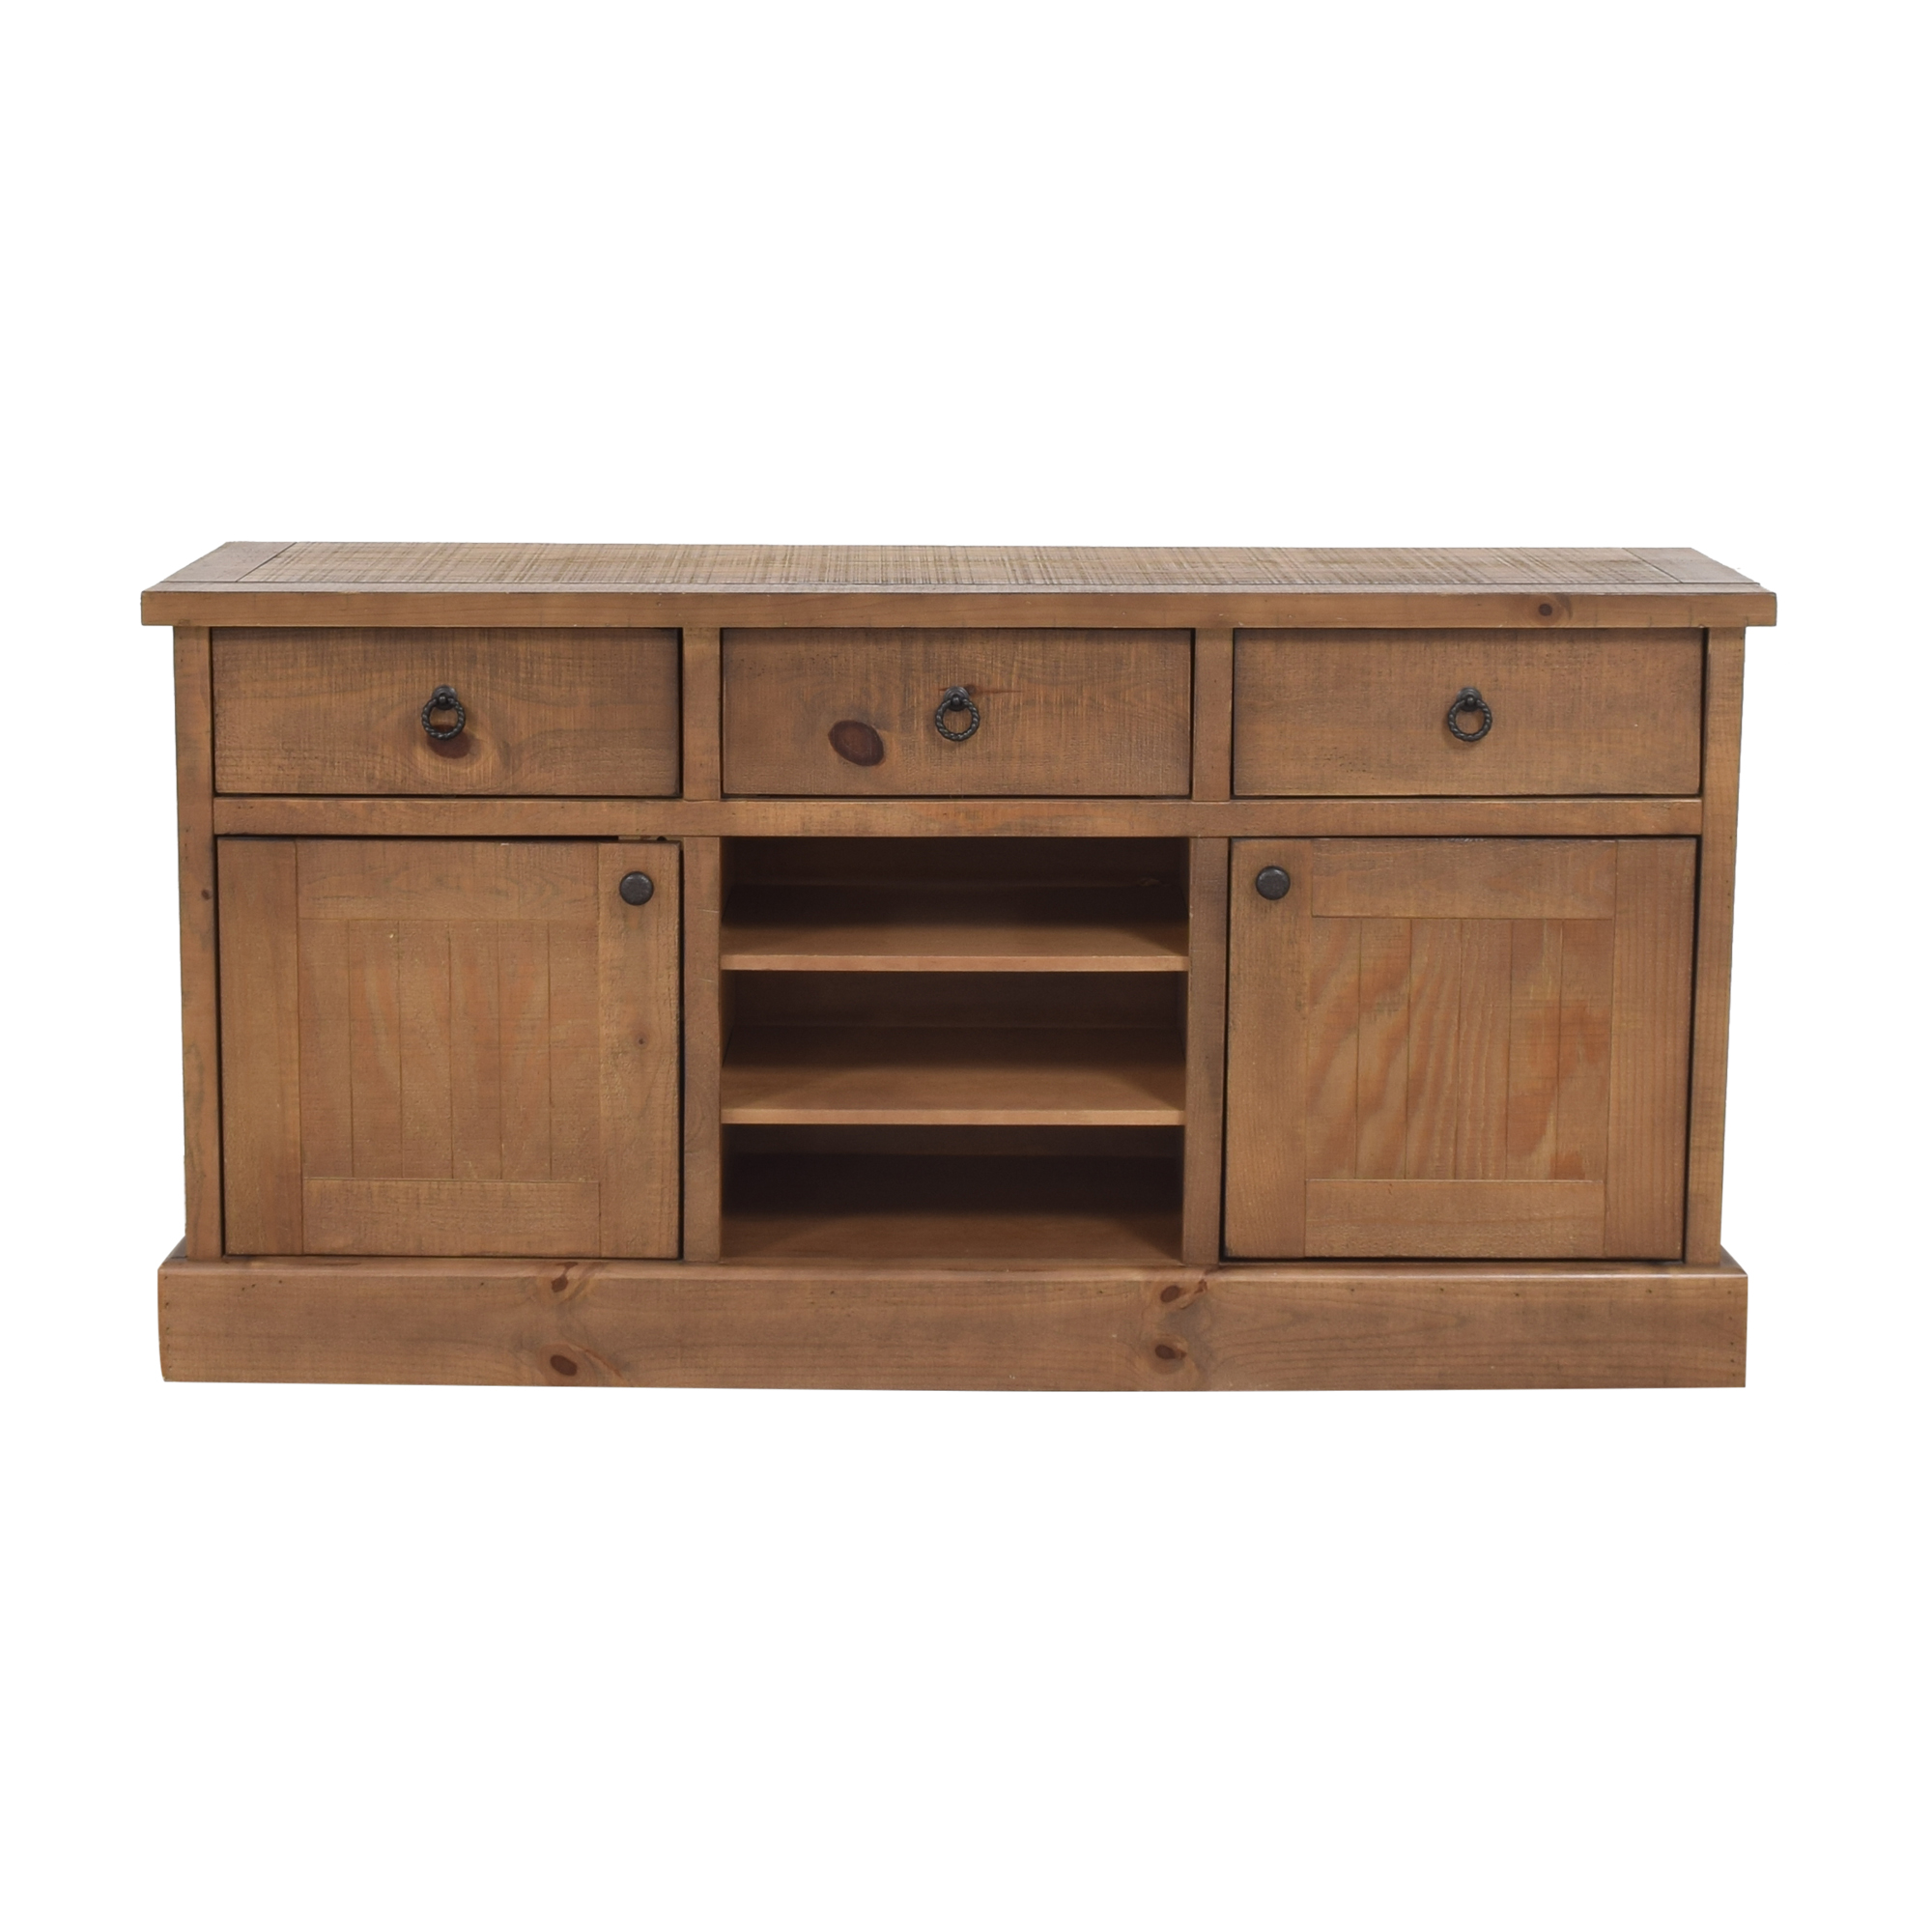 HomeGoods HomeGoods Reclaimed Sideboard on sale